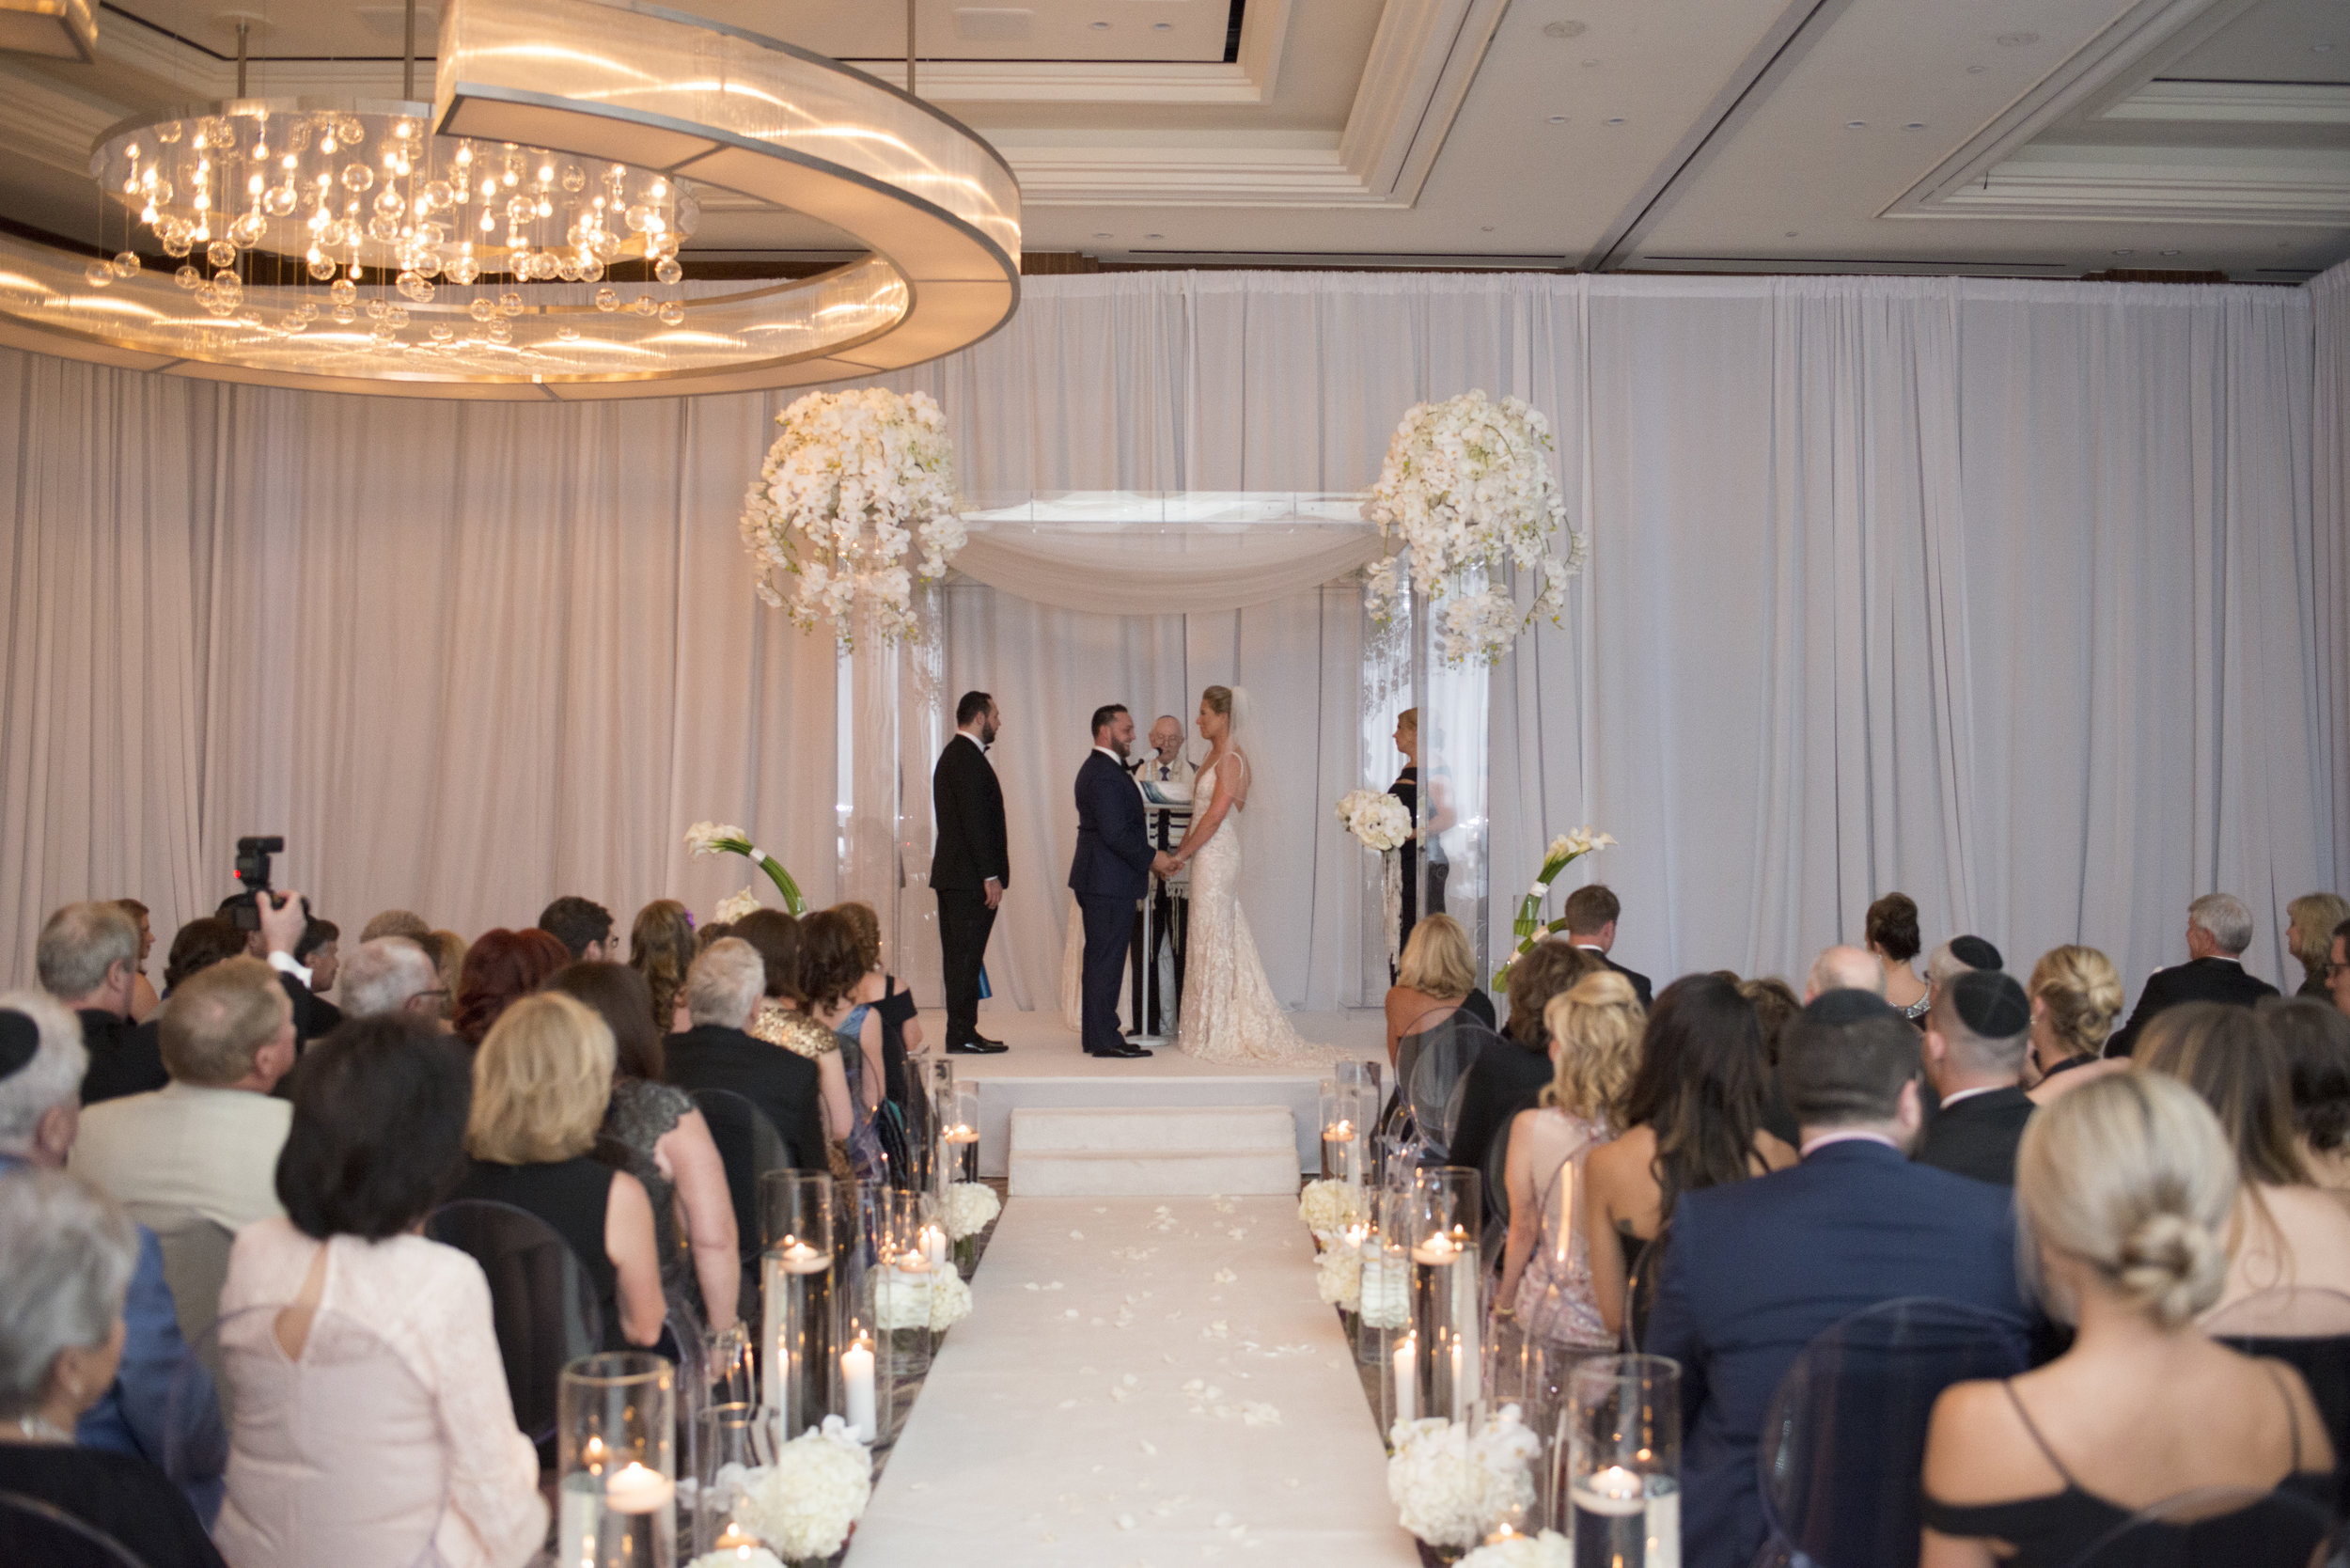 Luxe Jewish wedding ceremony with acrylic chuppah and orchids.WEDDING PLANNING & EVENT DESIGN • Andrea Eppolito Events ,PHOTOGRAPHY • AltF Photography ,FLORAL AND DECOR DESIGN & PRODUCTION • Destinations by Design , CATERING • Mandarin Oriental Las Vegas , COCKTAILS •  The Grand Bevy , WEDDING GOWN •  Galia Lahav ,SHOES •  Jimmy Choo